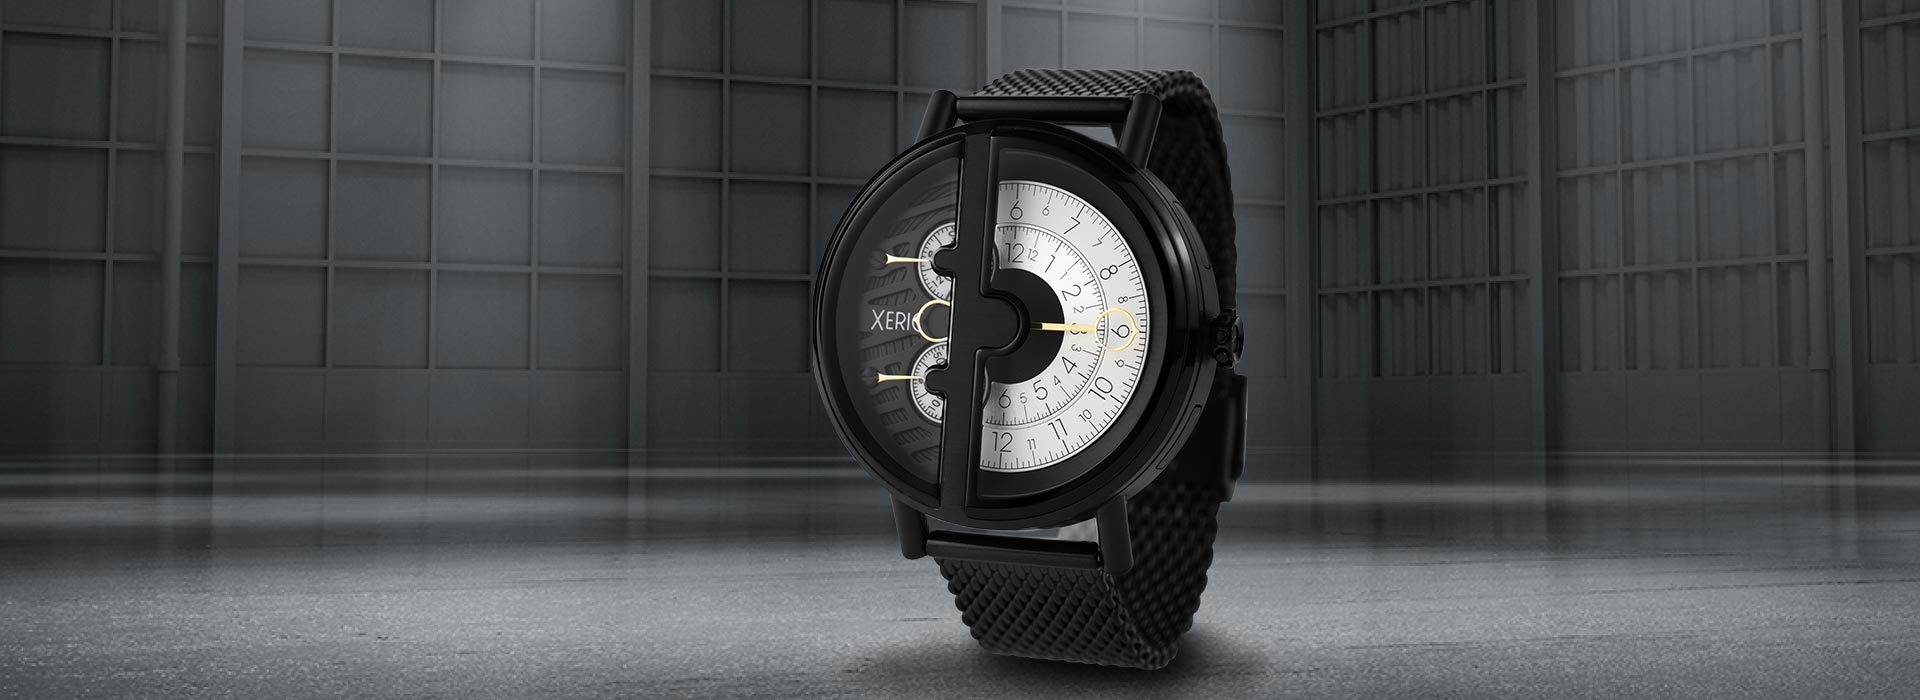 warehouse sale watches.com